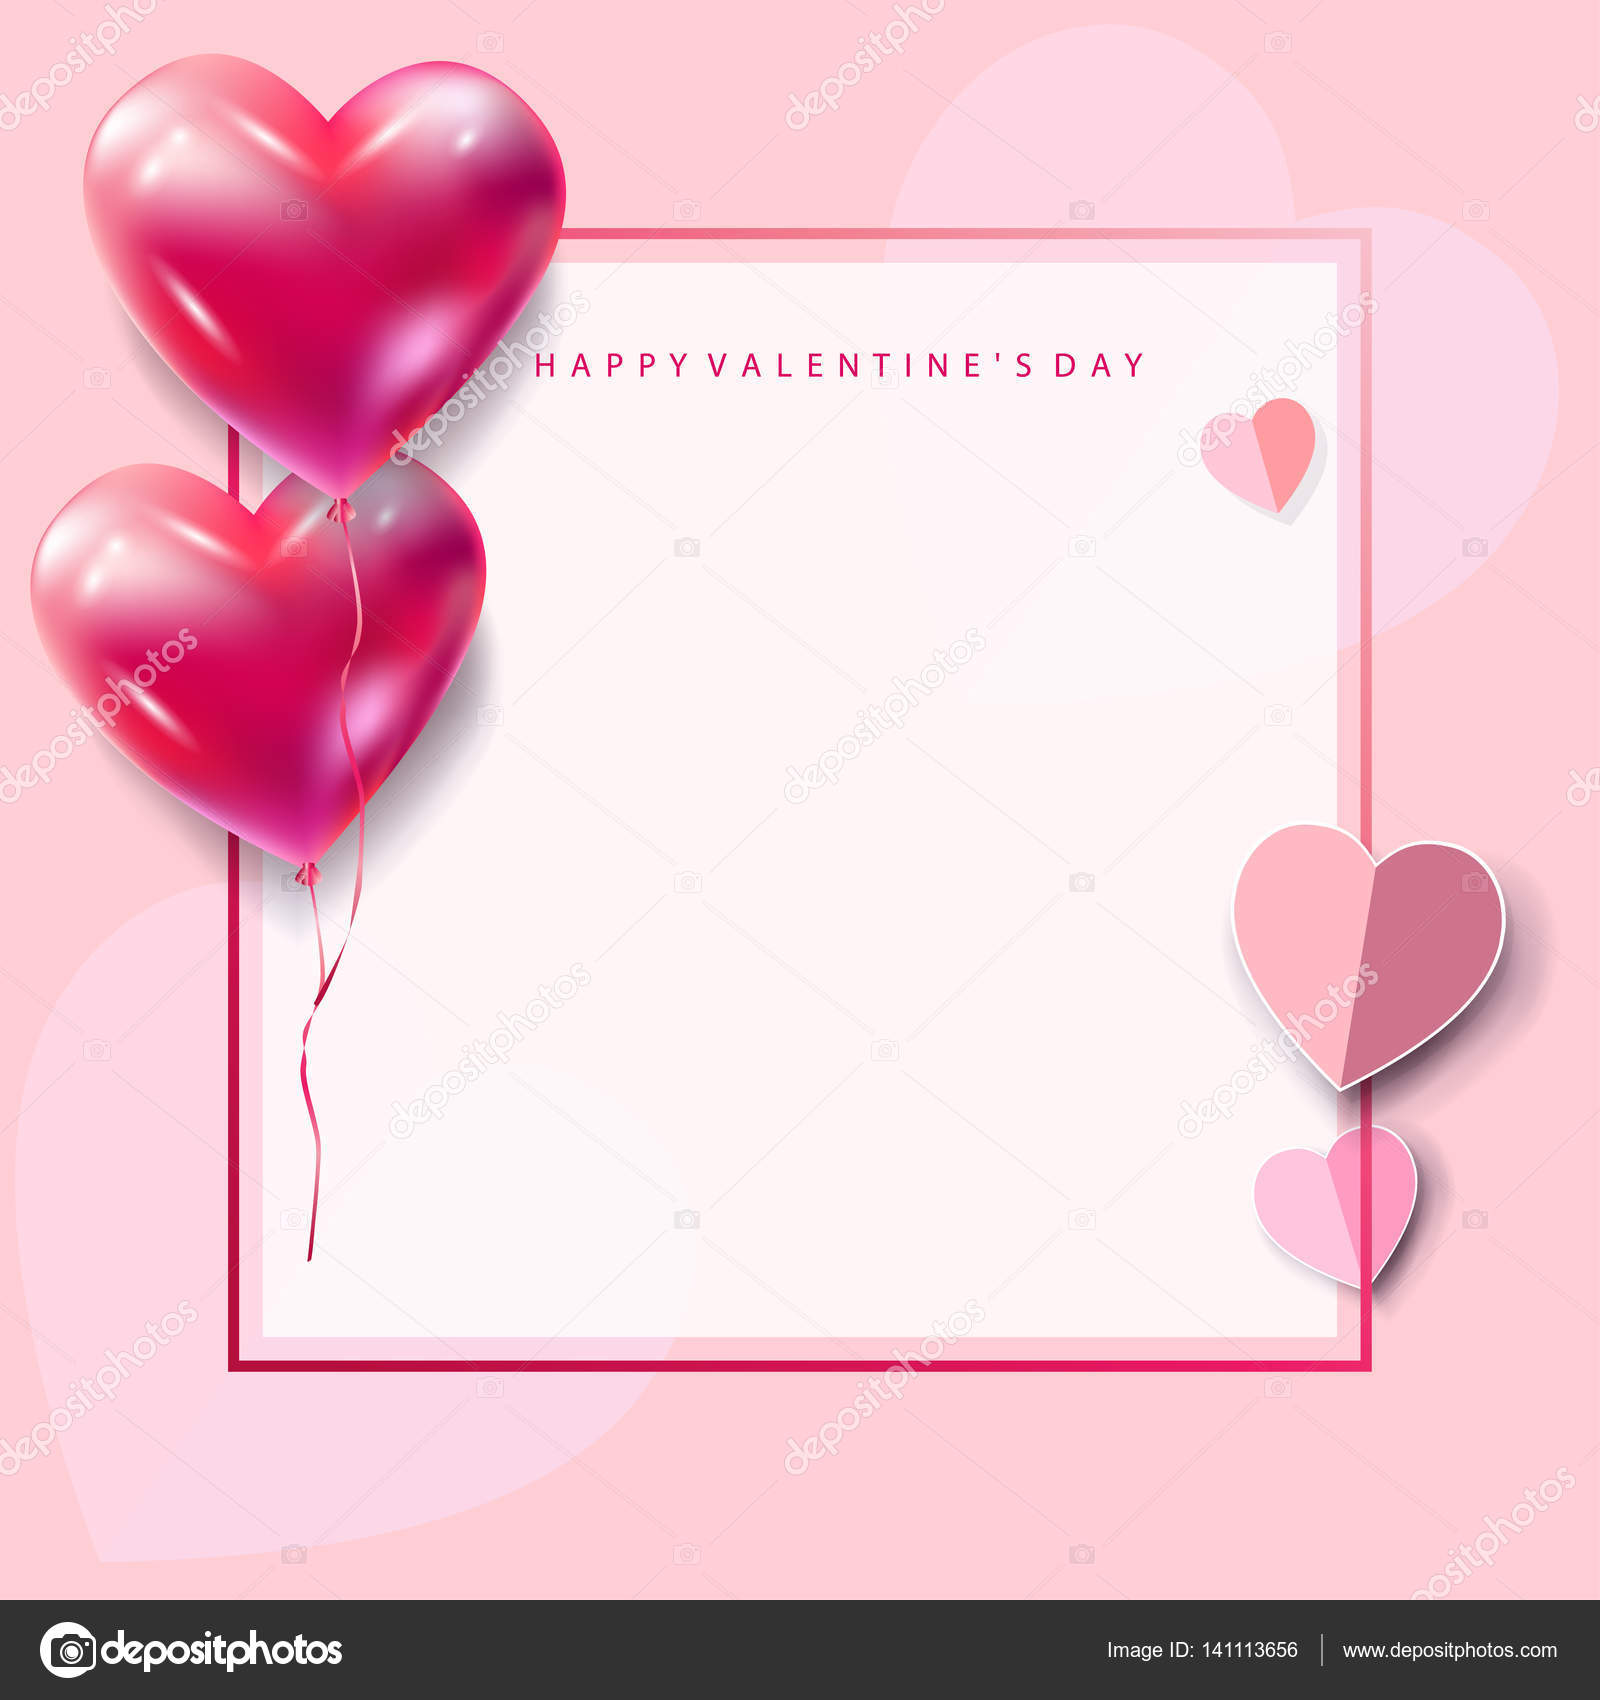 happy valentines day greeting card vector template romantic poster with hearts balloons festive background